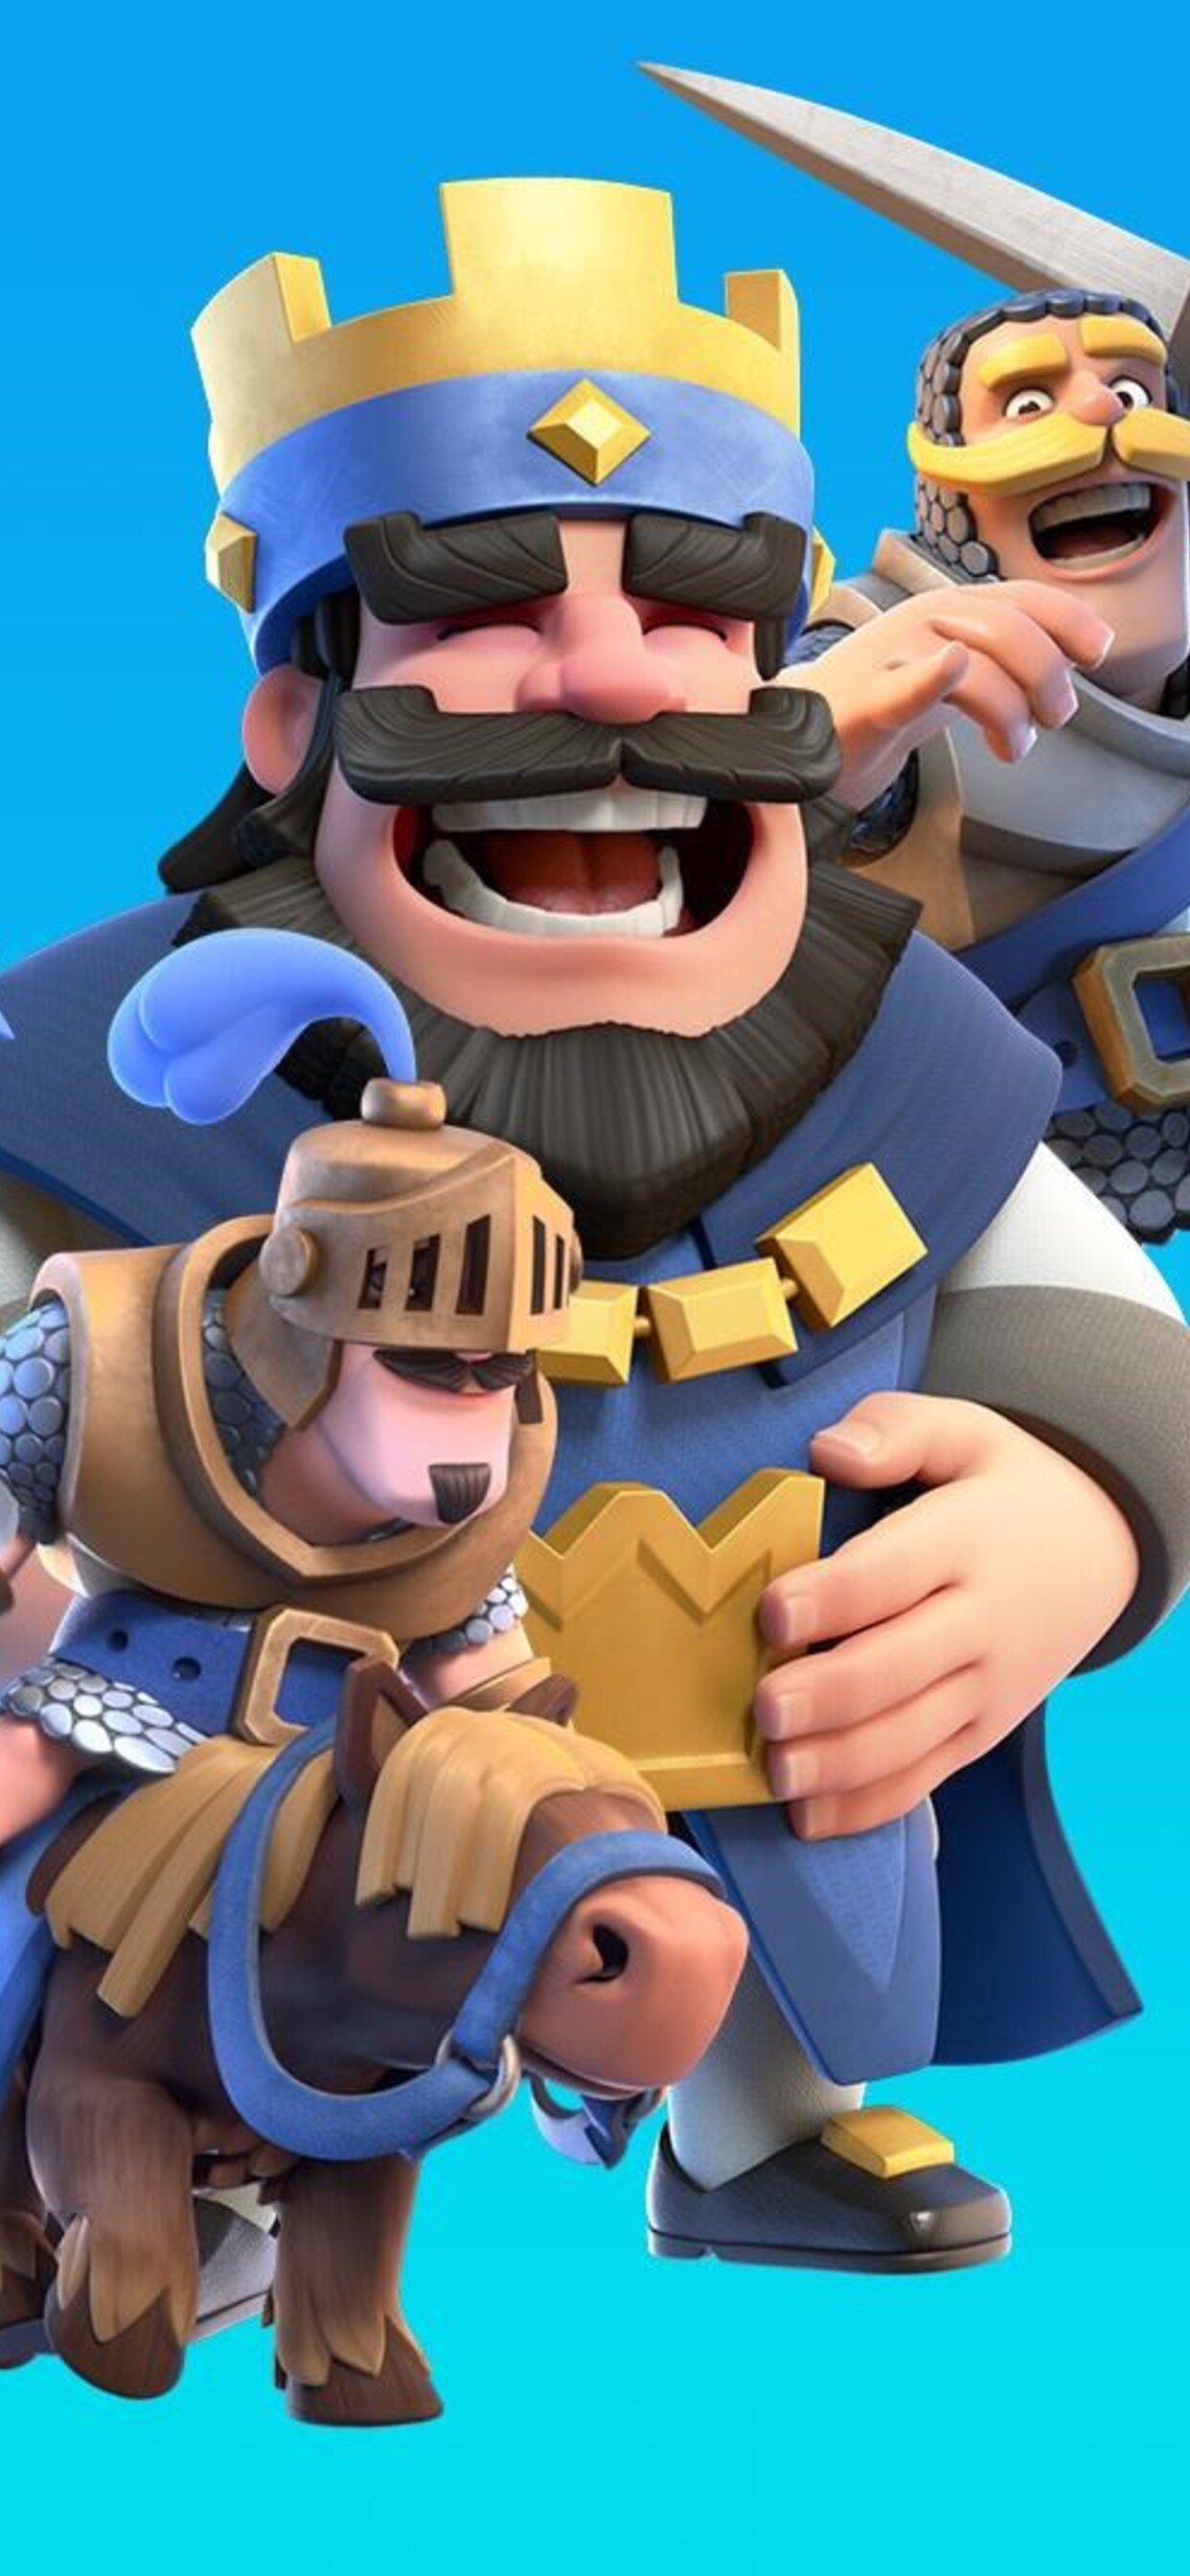 Clash royale wallpaper for iphone